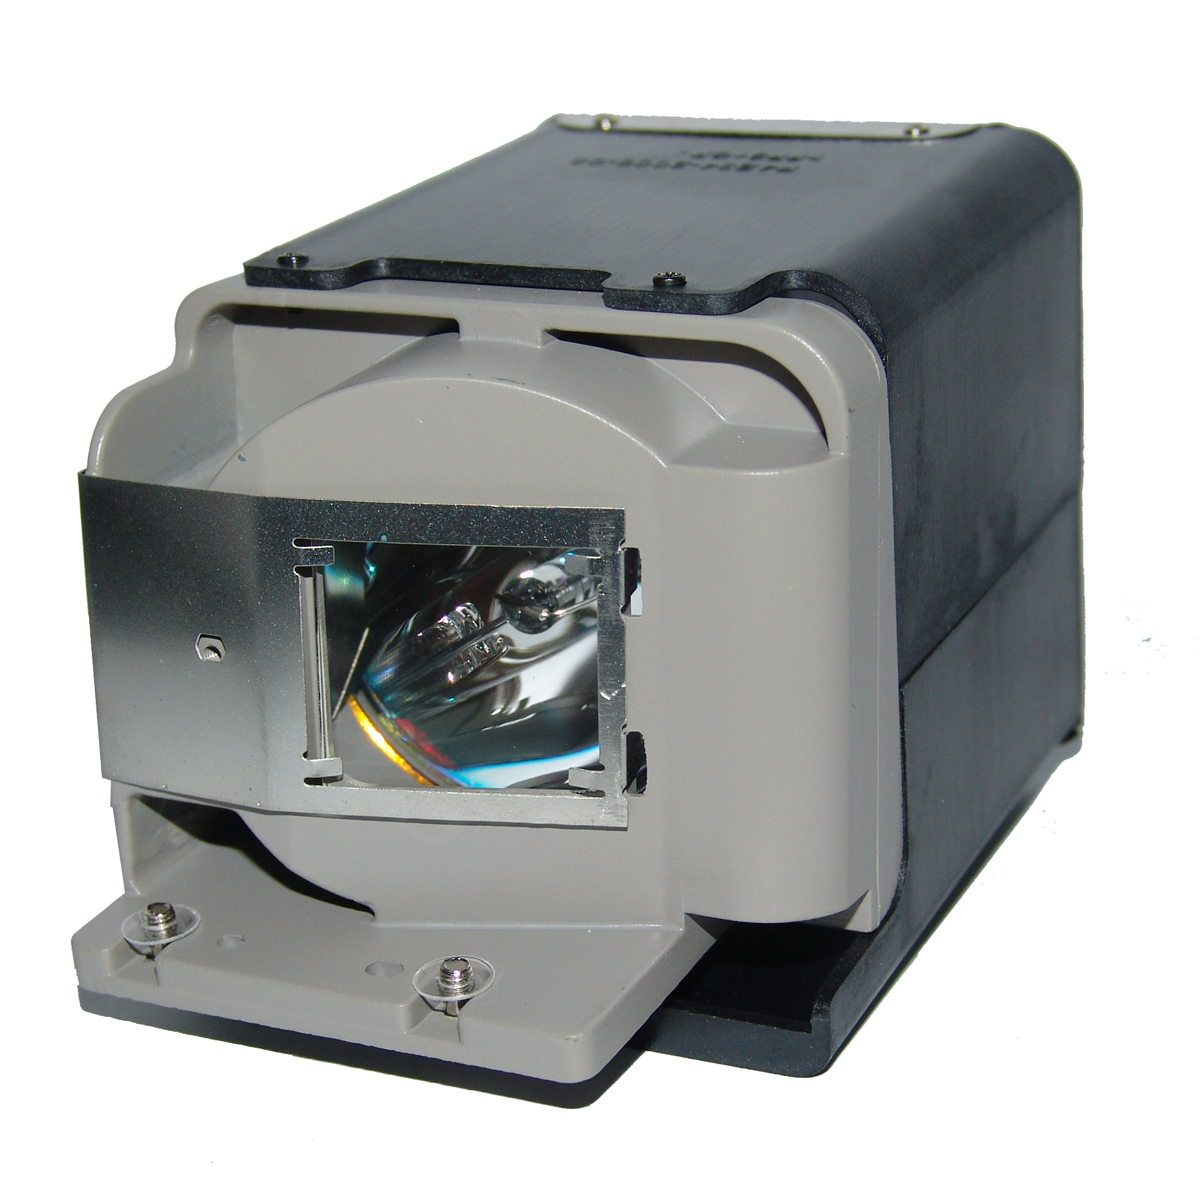 Lamp Housing For Viewsonic Vpd X5400 Vpdx5400 Projector Dlp Lcd Accessories 3 Bulb